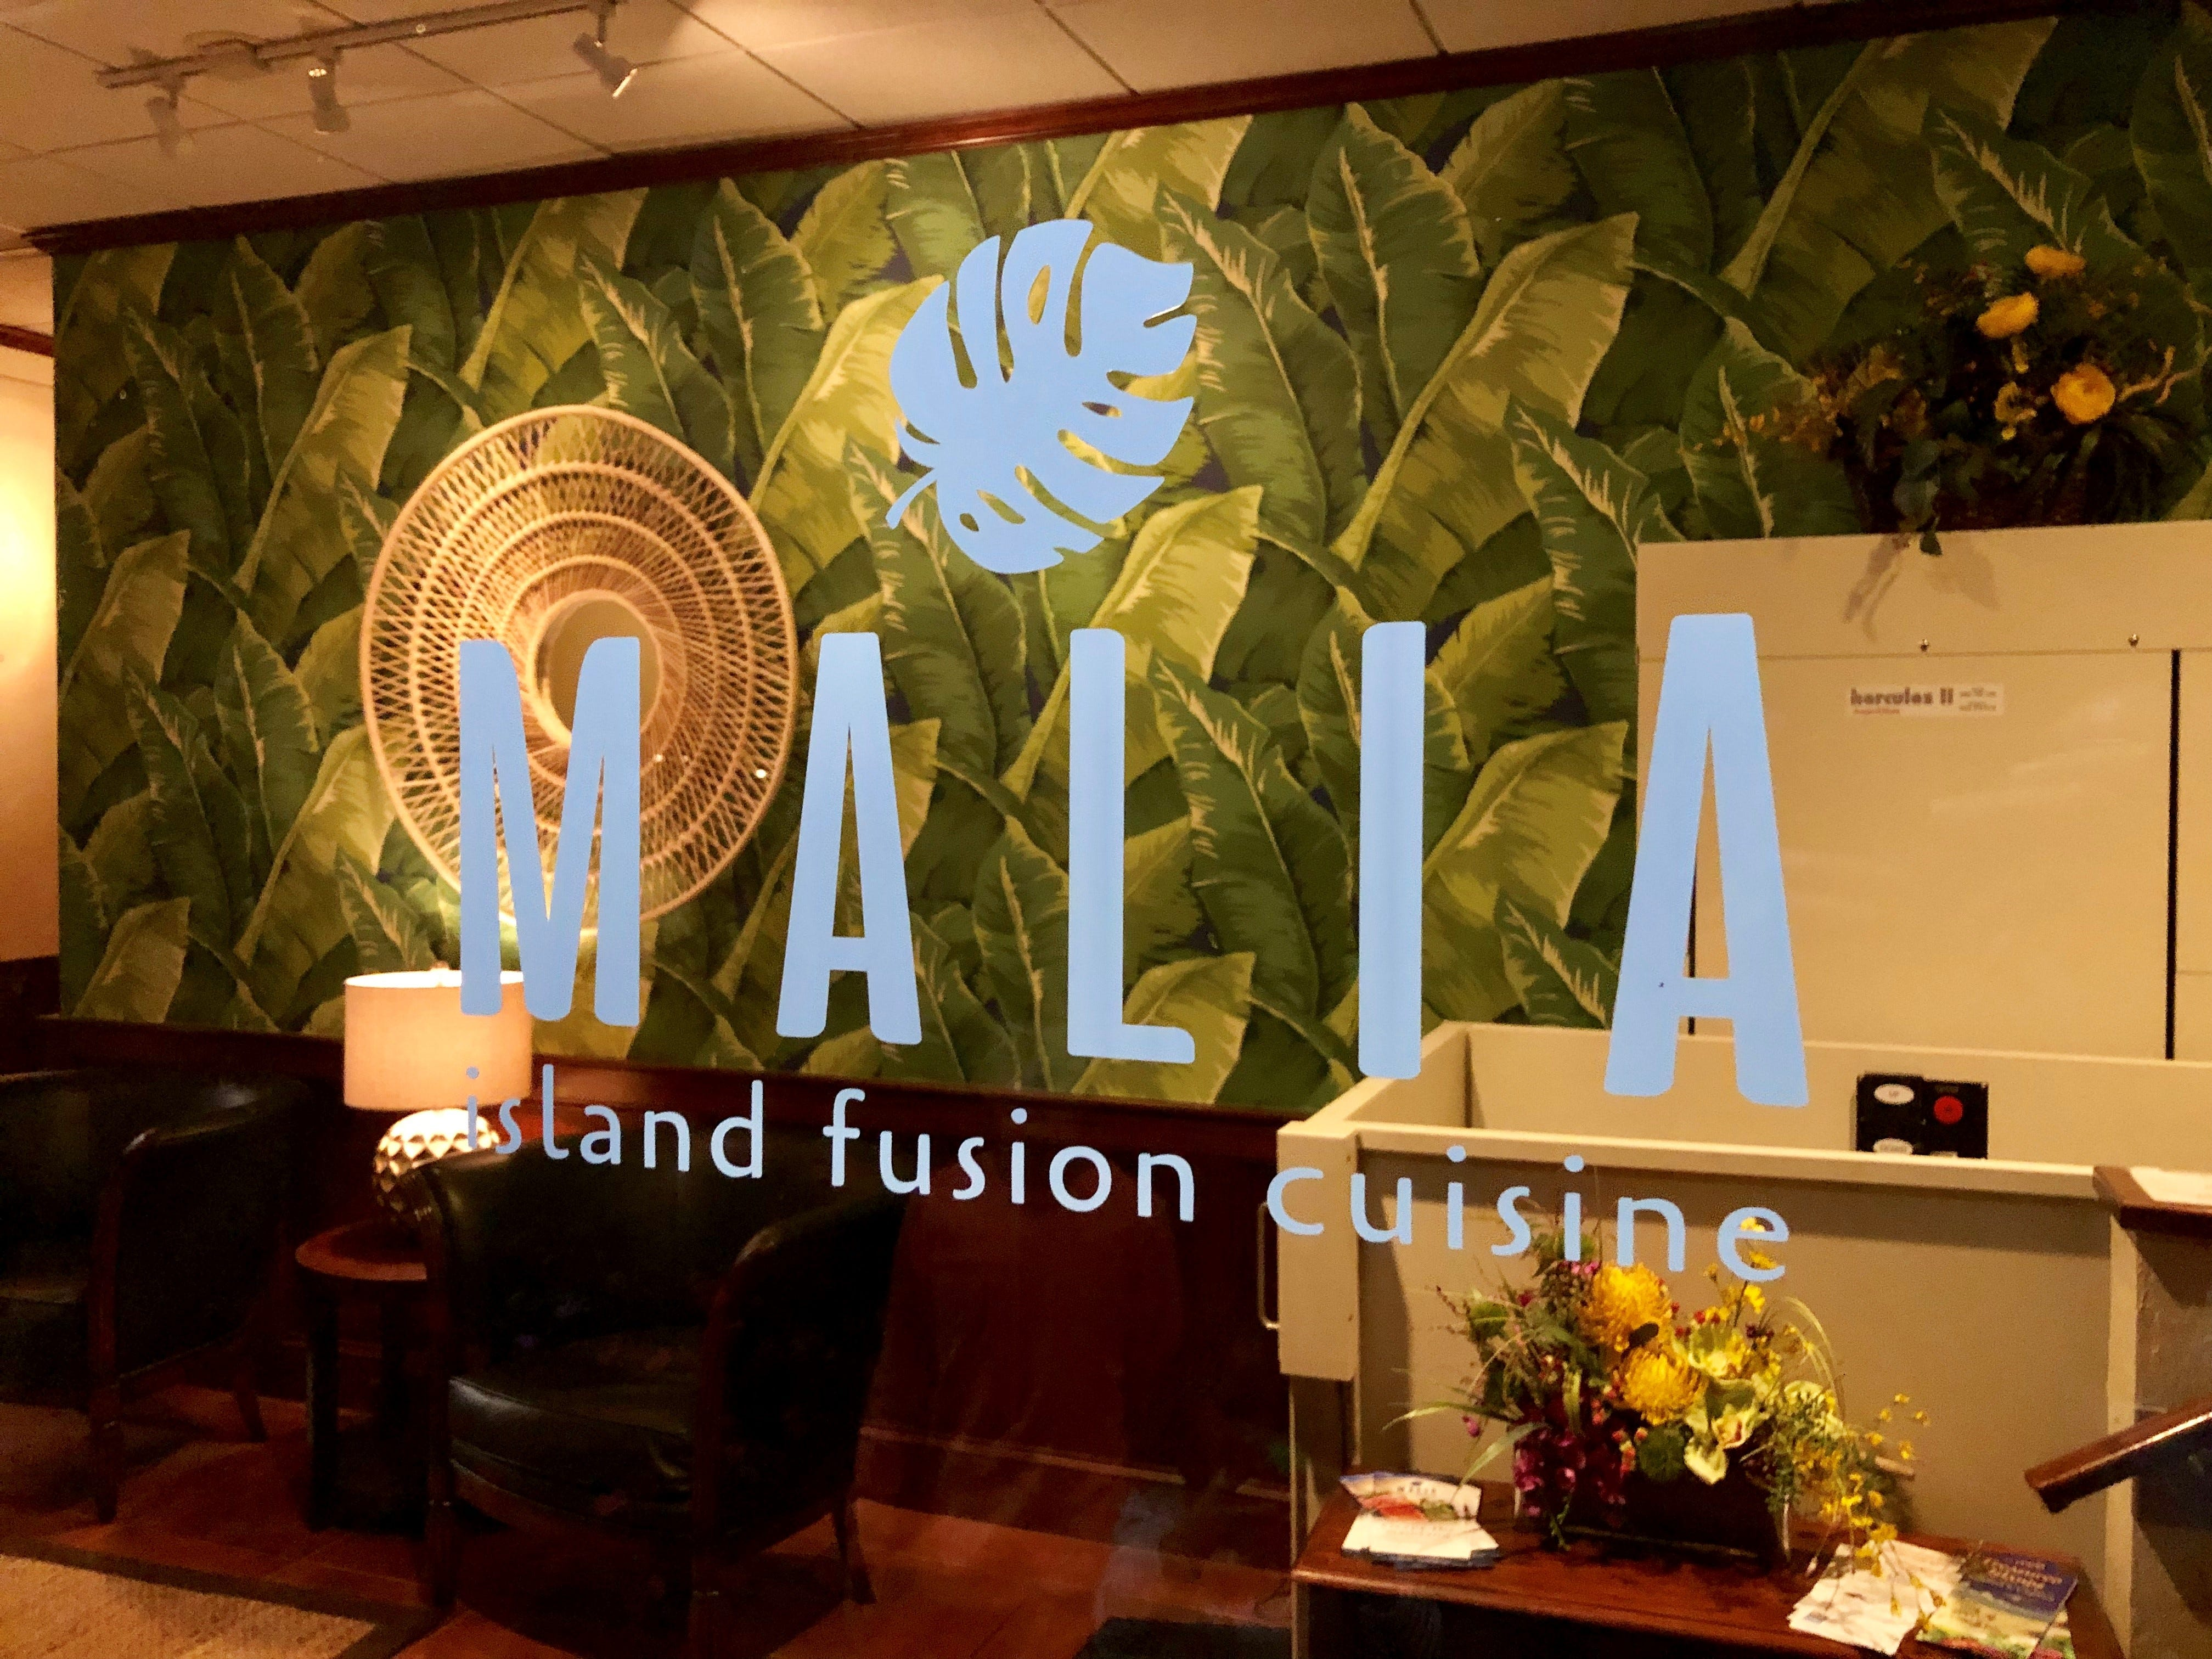 Malia Island Fusion opened in the former Blue Coyote space on Sanibel in November 2018.